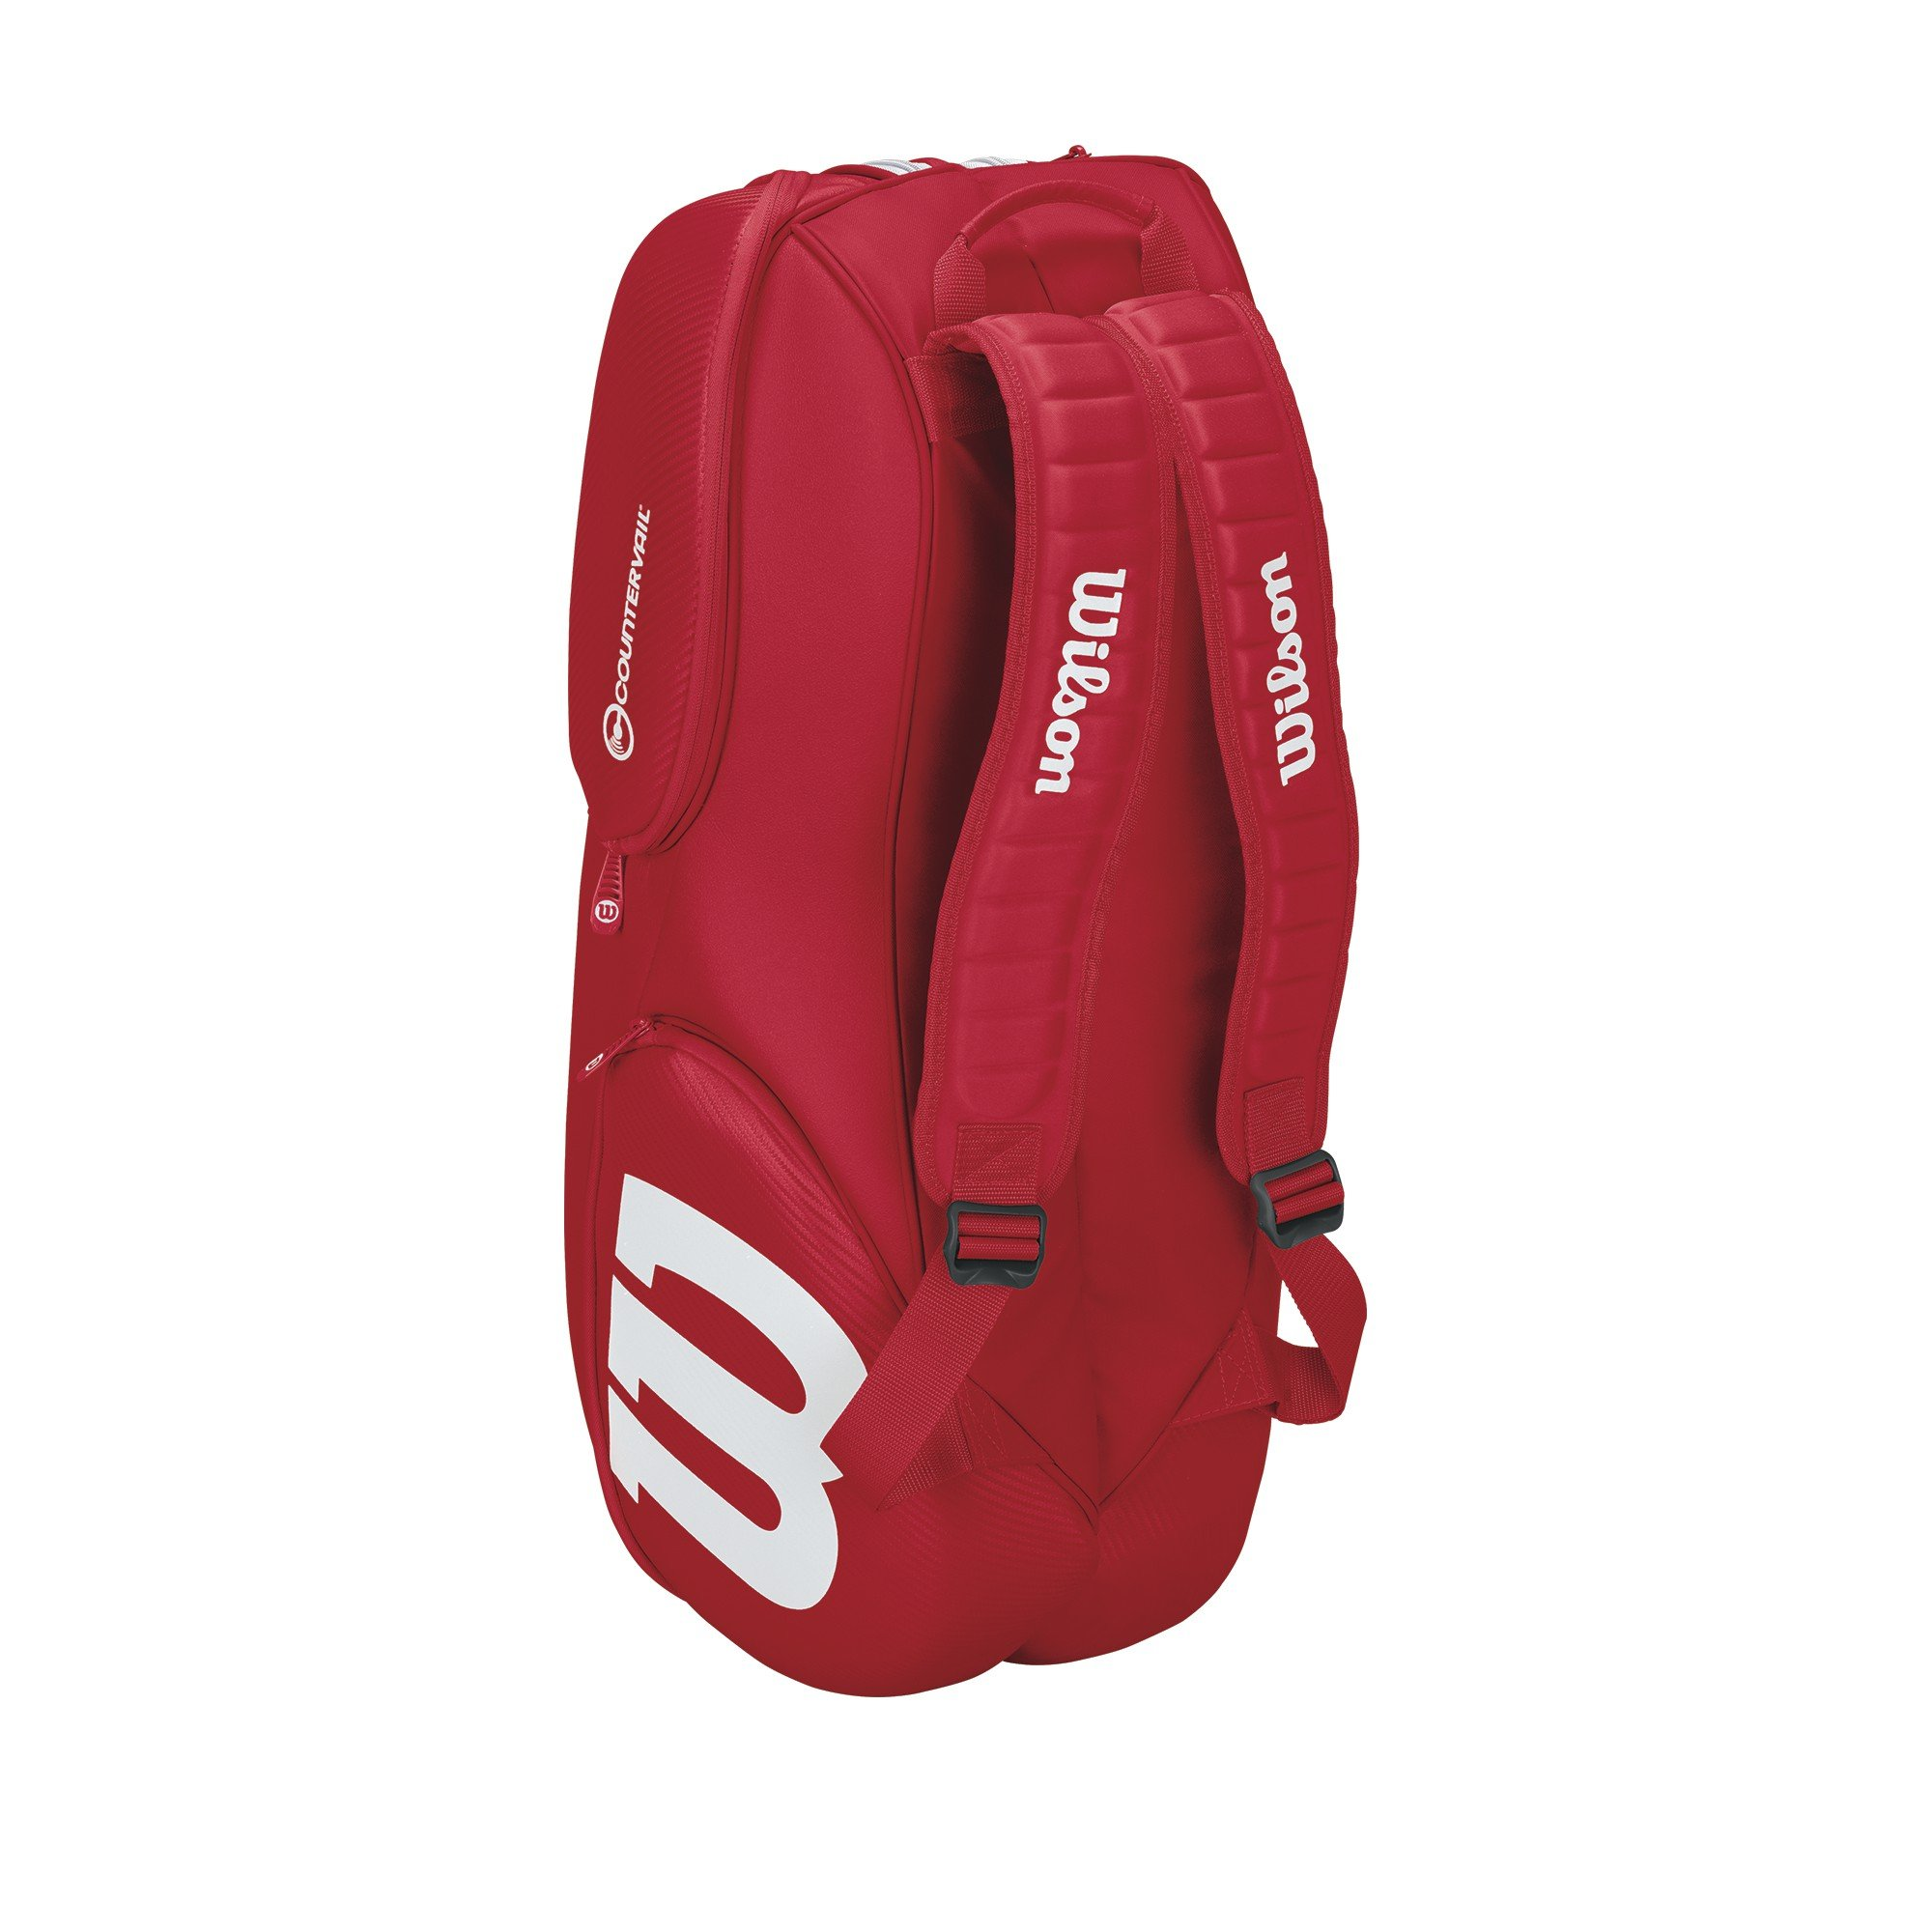 Wilson Pro Staff Tennis Bag - Red /White,9 Pack by Wilson (Image #3)